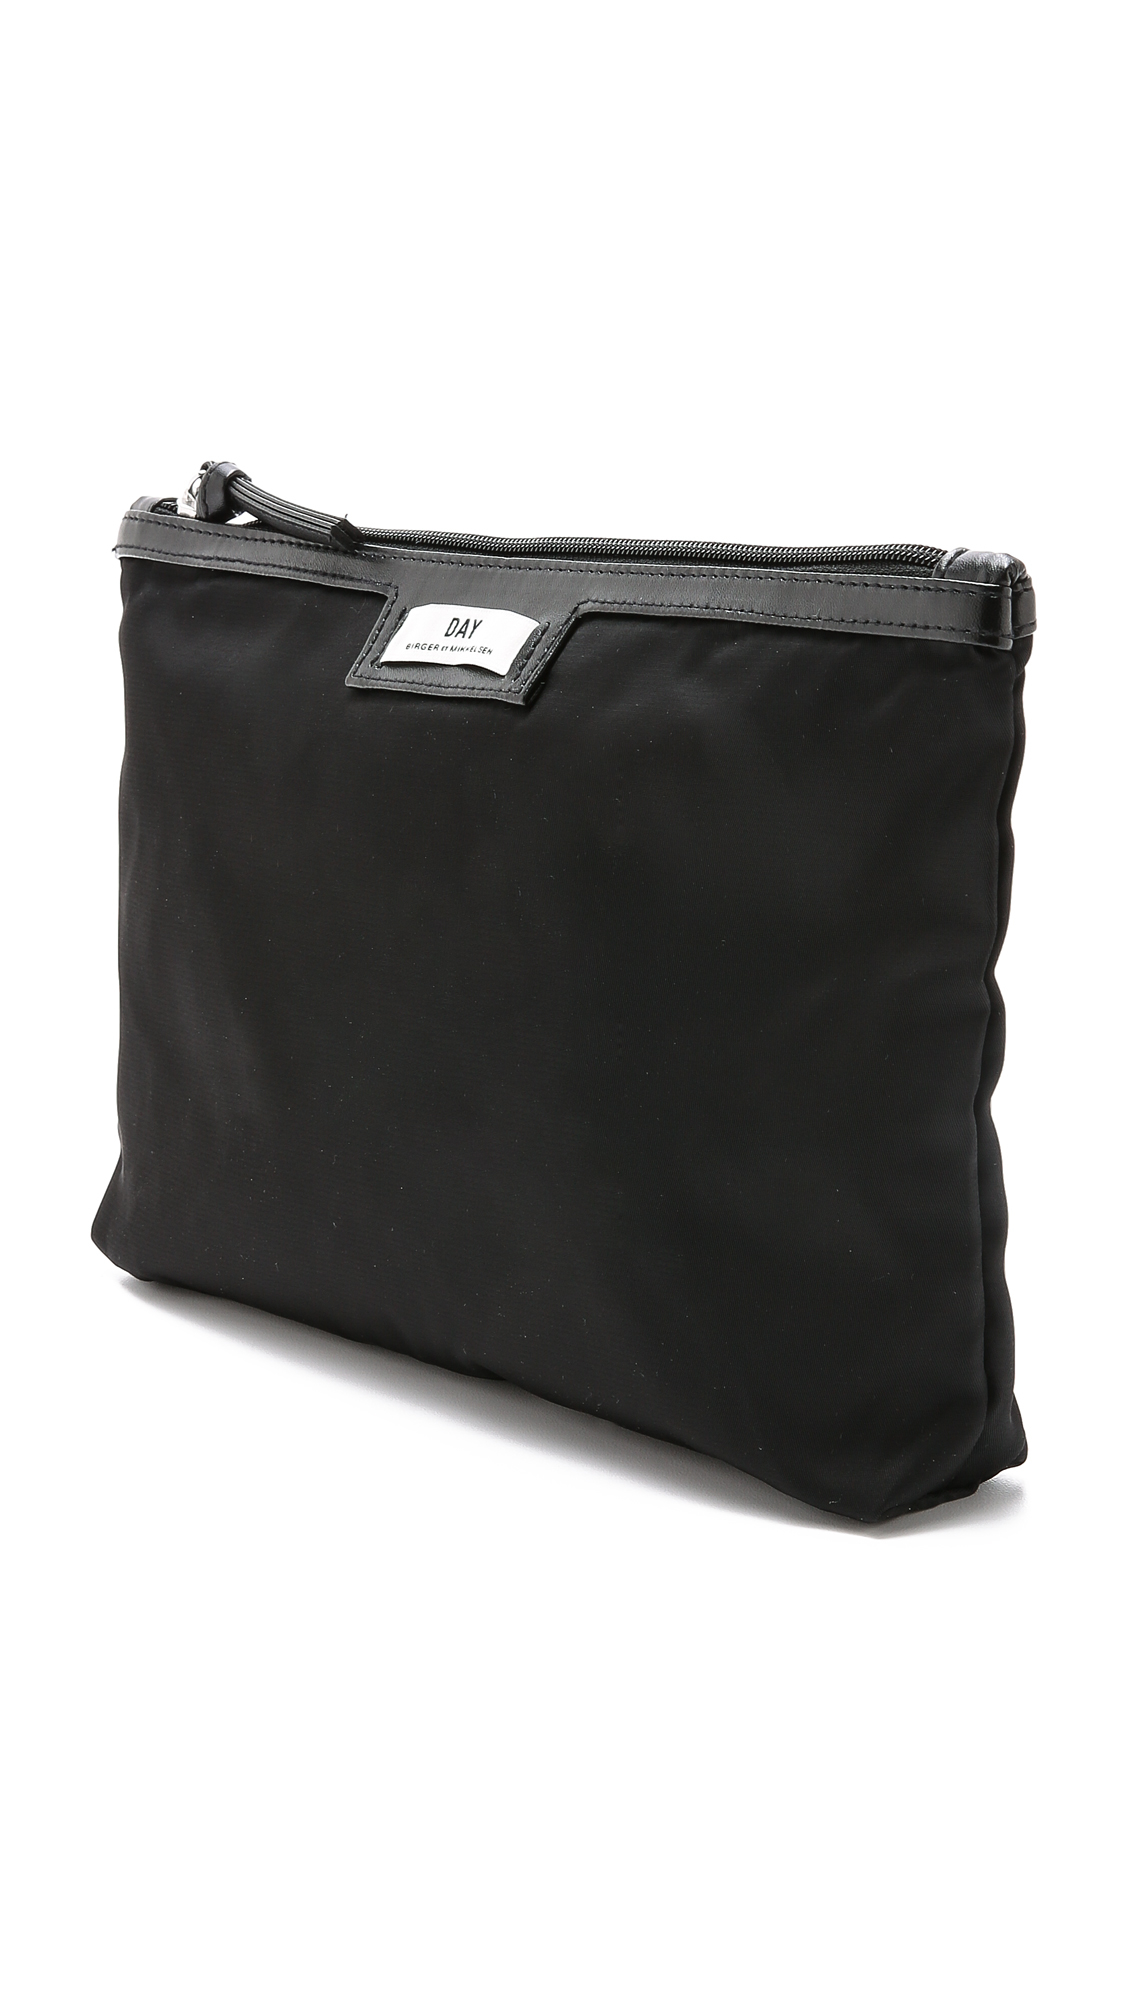 f77a6a7a Day Birger et Mikkelsen Small Day Gweneth Pouch - Black in Black - Lyst